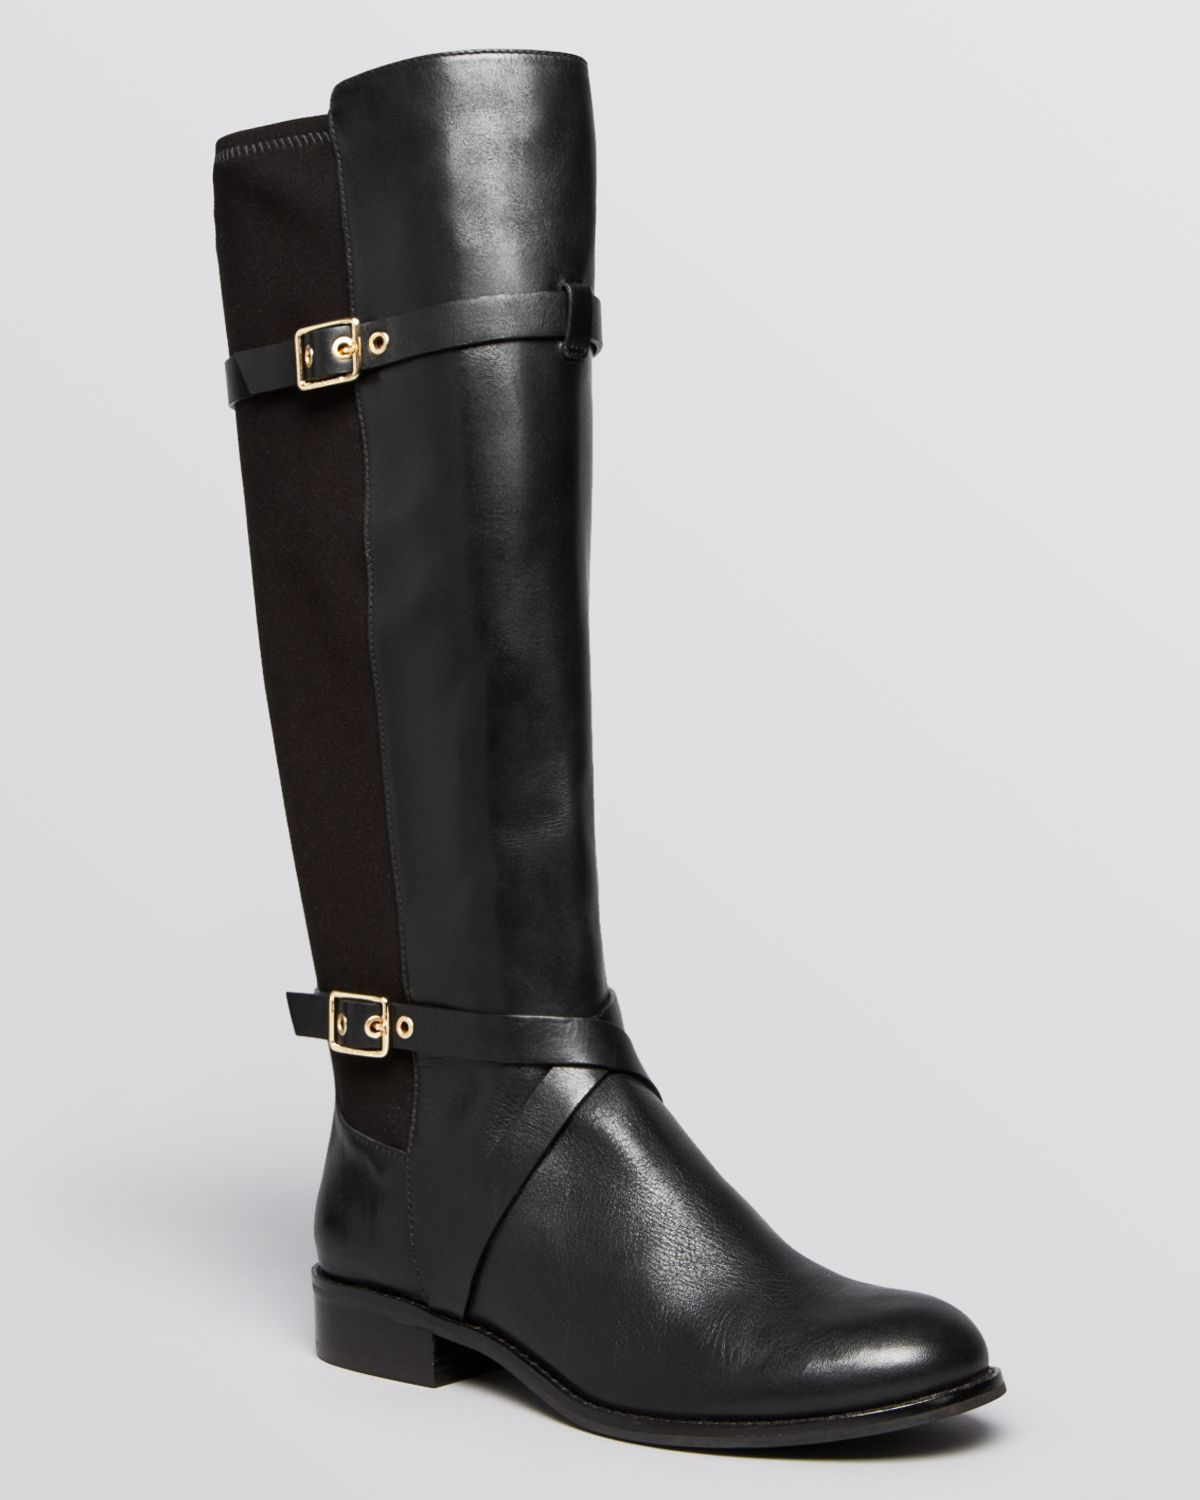 ac45f4a3b Gallery. Previously sold at: Bloomingdale's · Women's Riding Boots